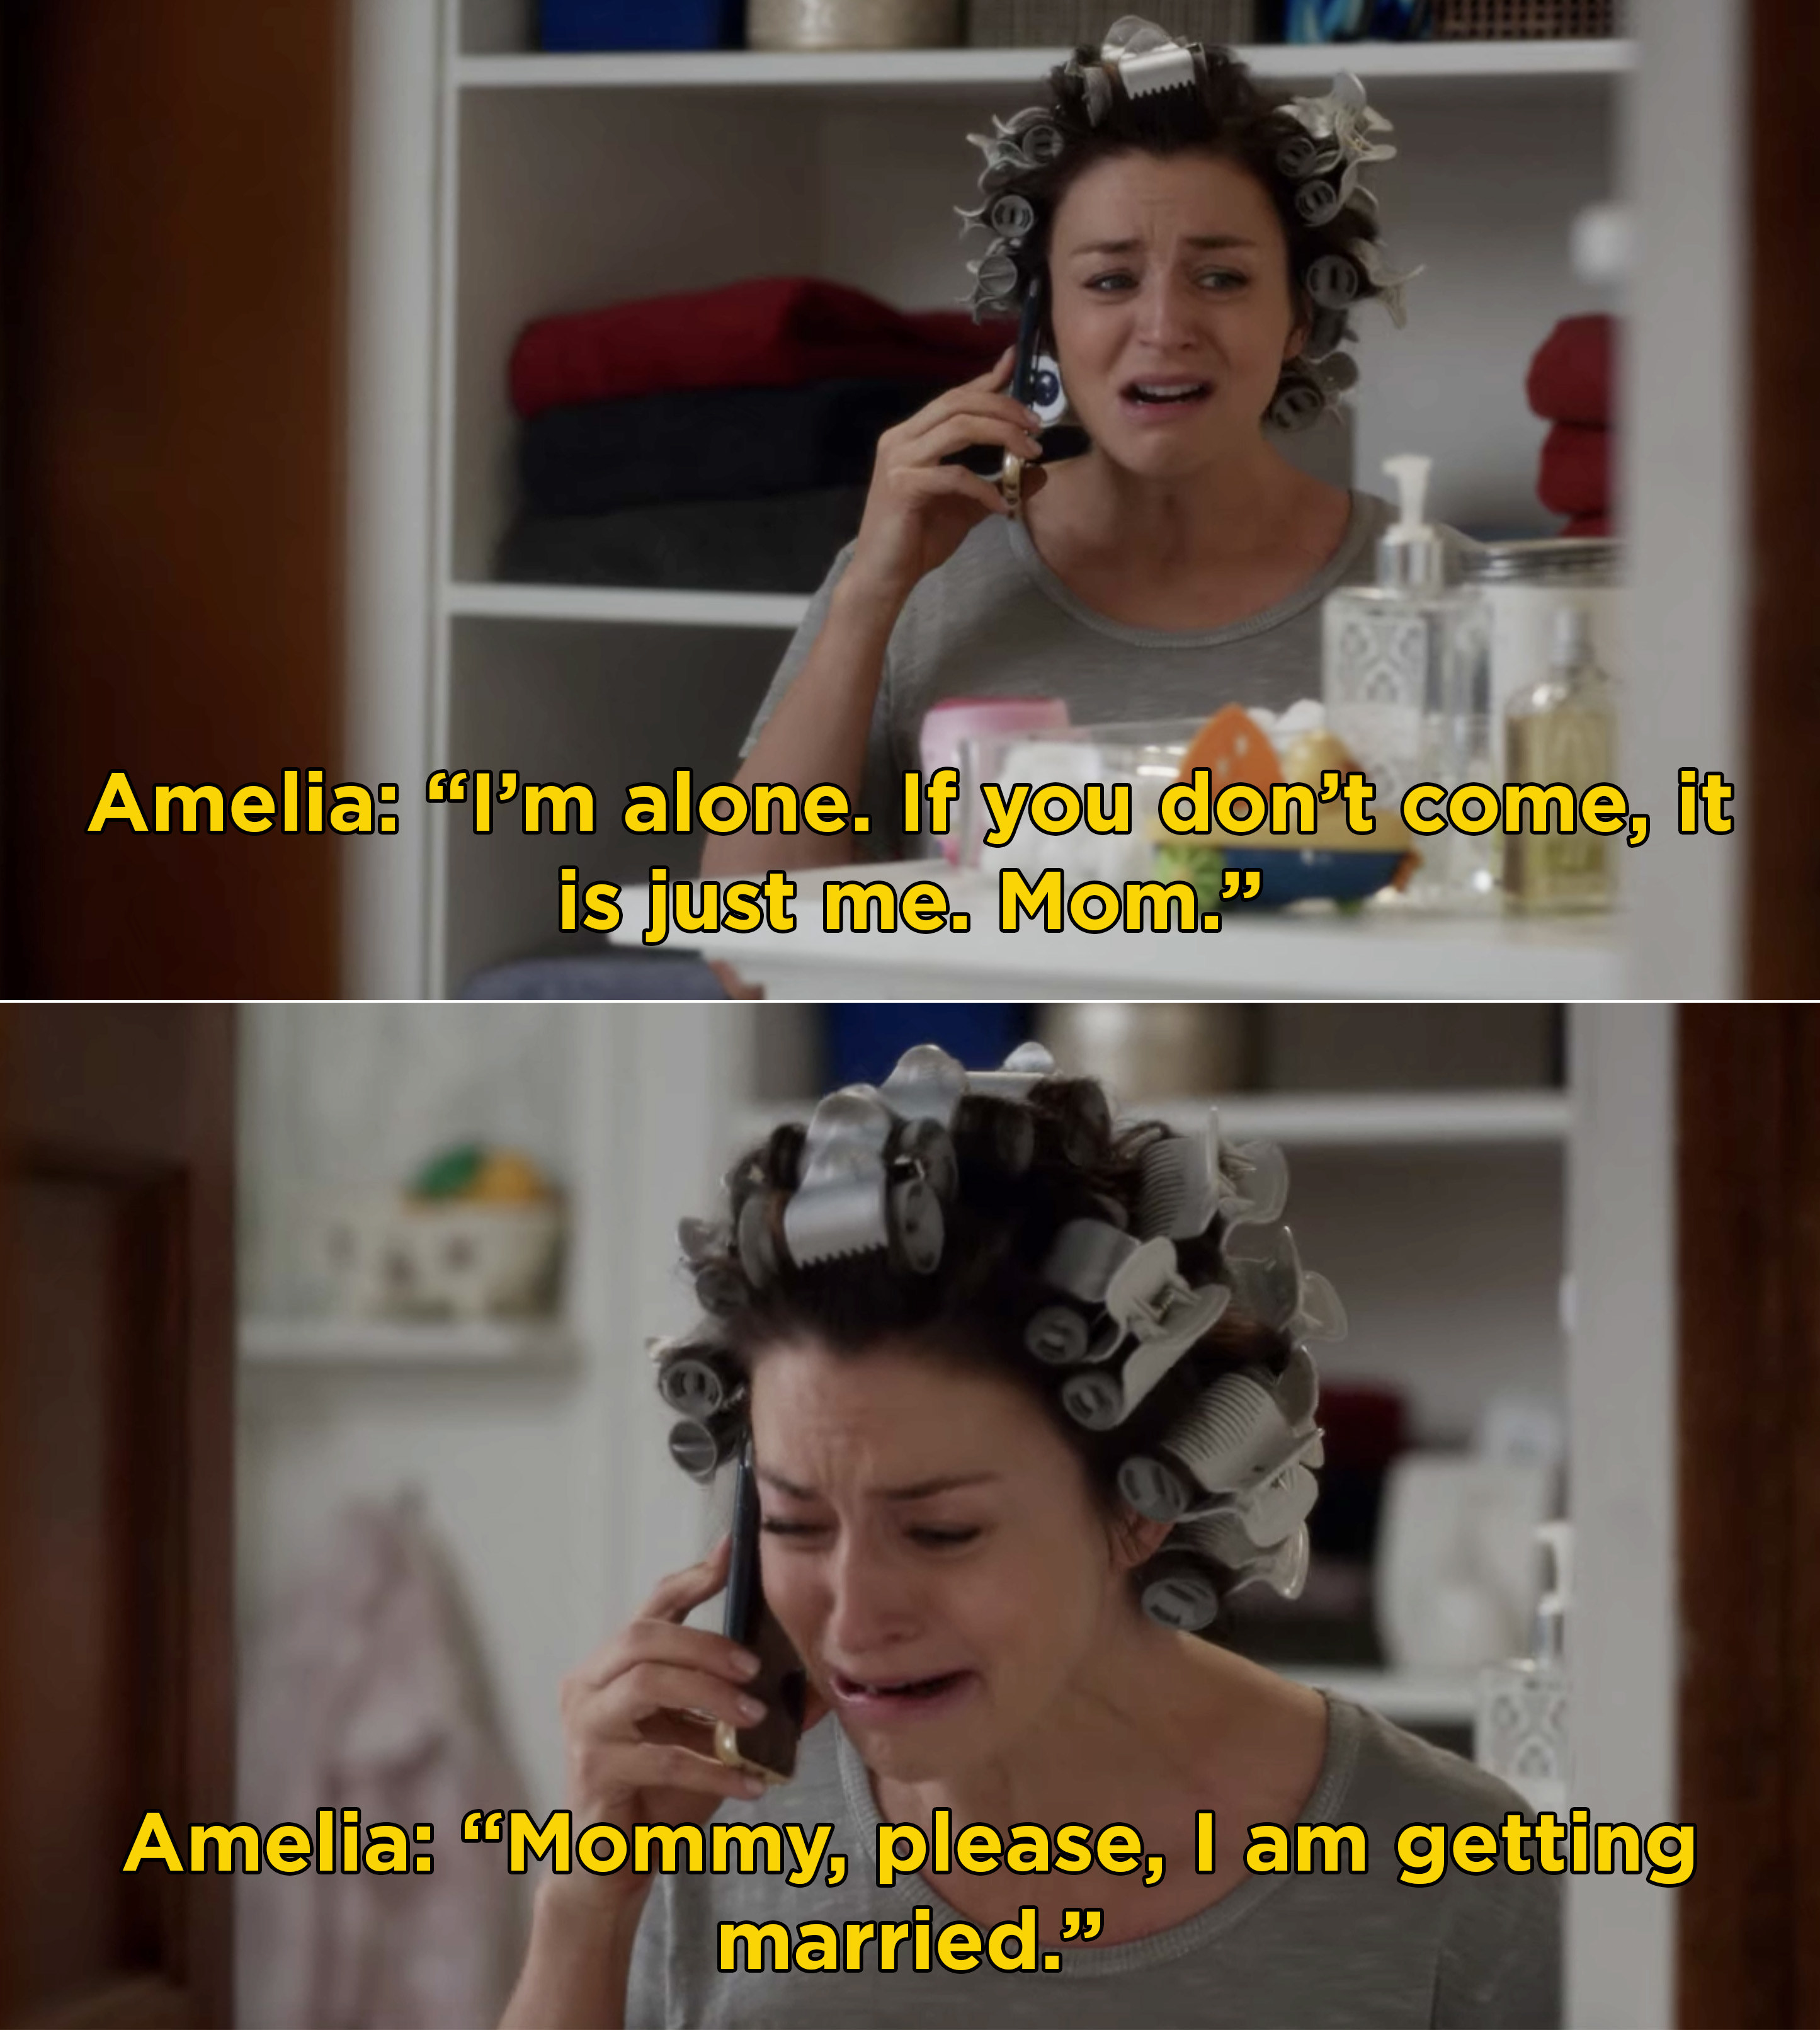 Amelia crying on the phone with her mom and pleading that her mom comes to her wedding